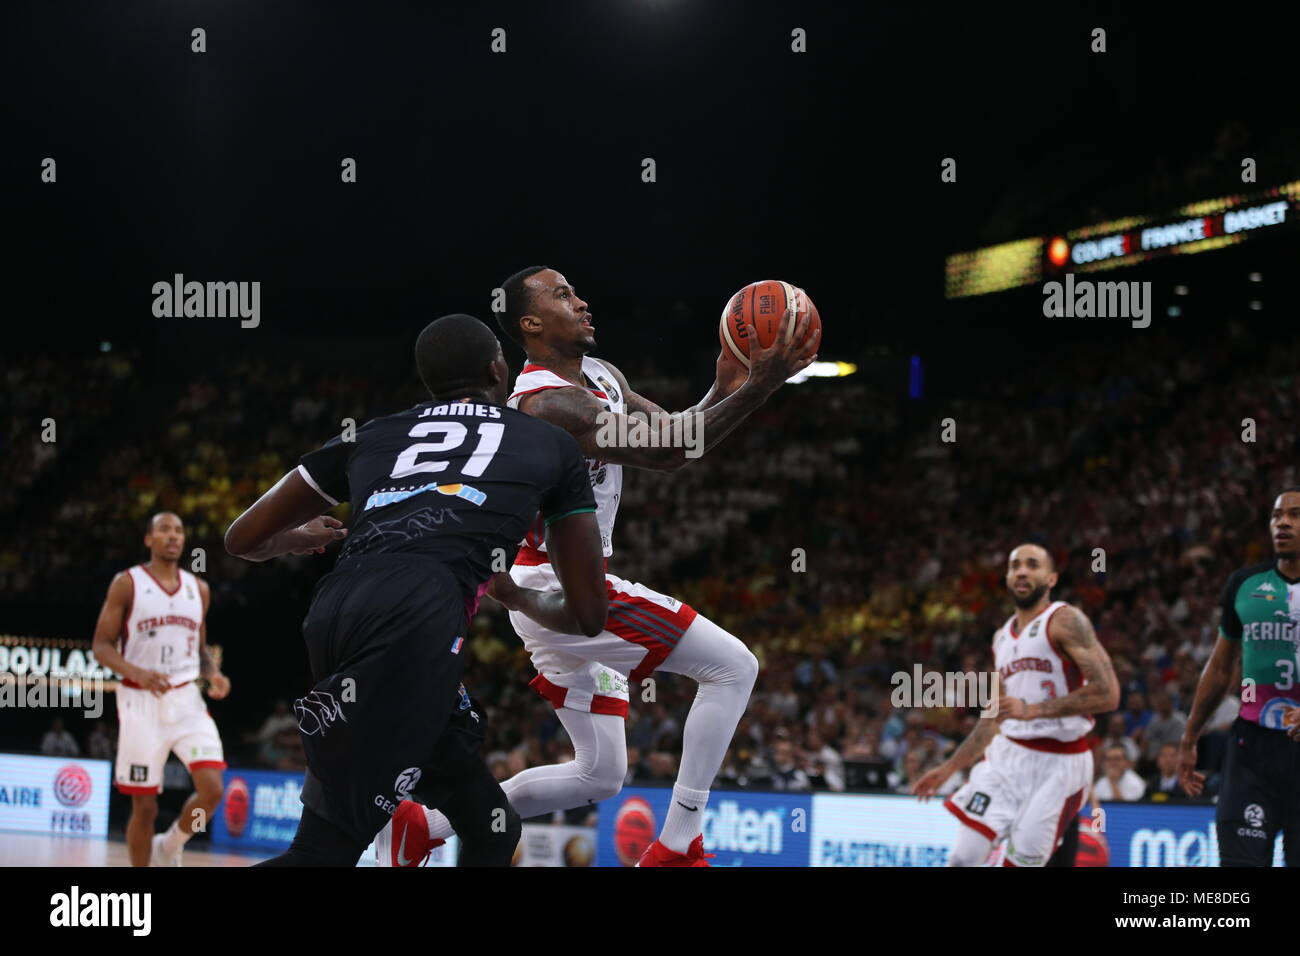 Strasbourg, France. 21st Apr, 2018. Dee Bost (M) in action during the 'French Cup' match between SIG Strasbourg and Boulazac Basket Dordogne.Final Score Credit: Elyxandro Cegarra/SOPA Images/ZUMA Wire/Alamy Live News - Stock Image